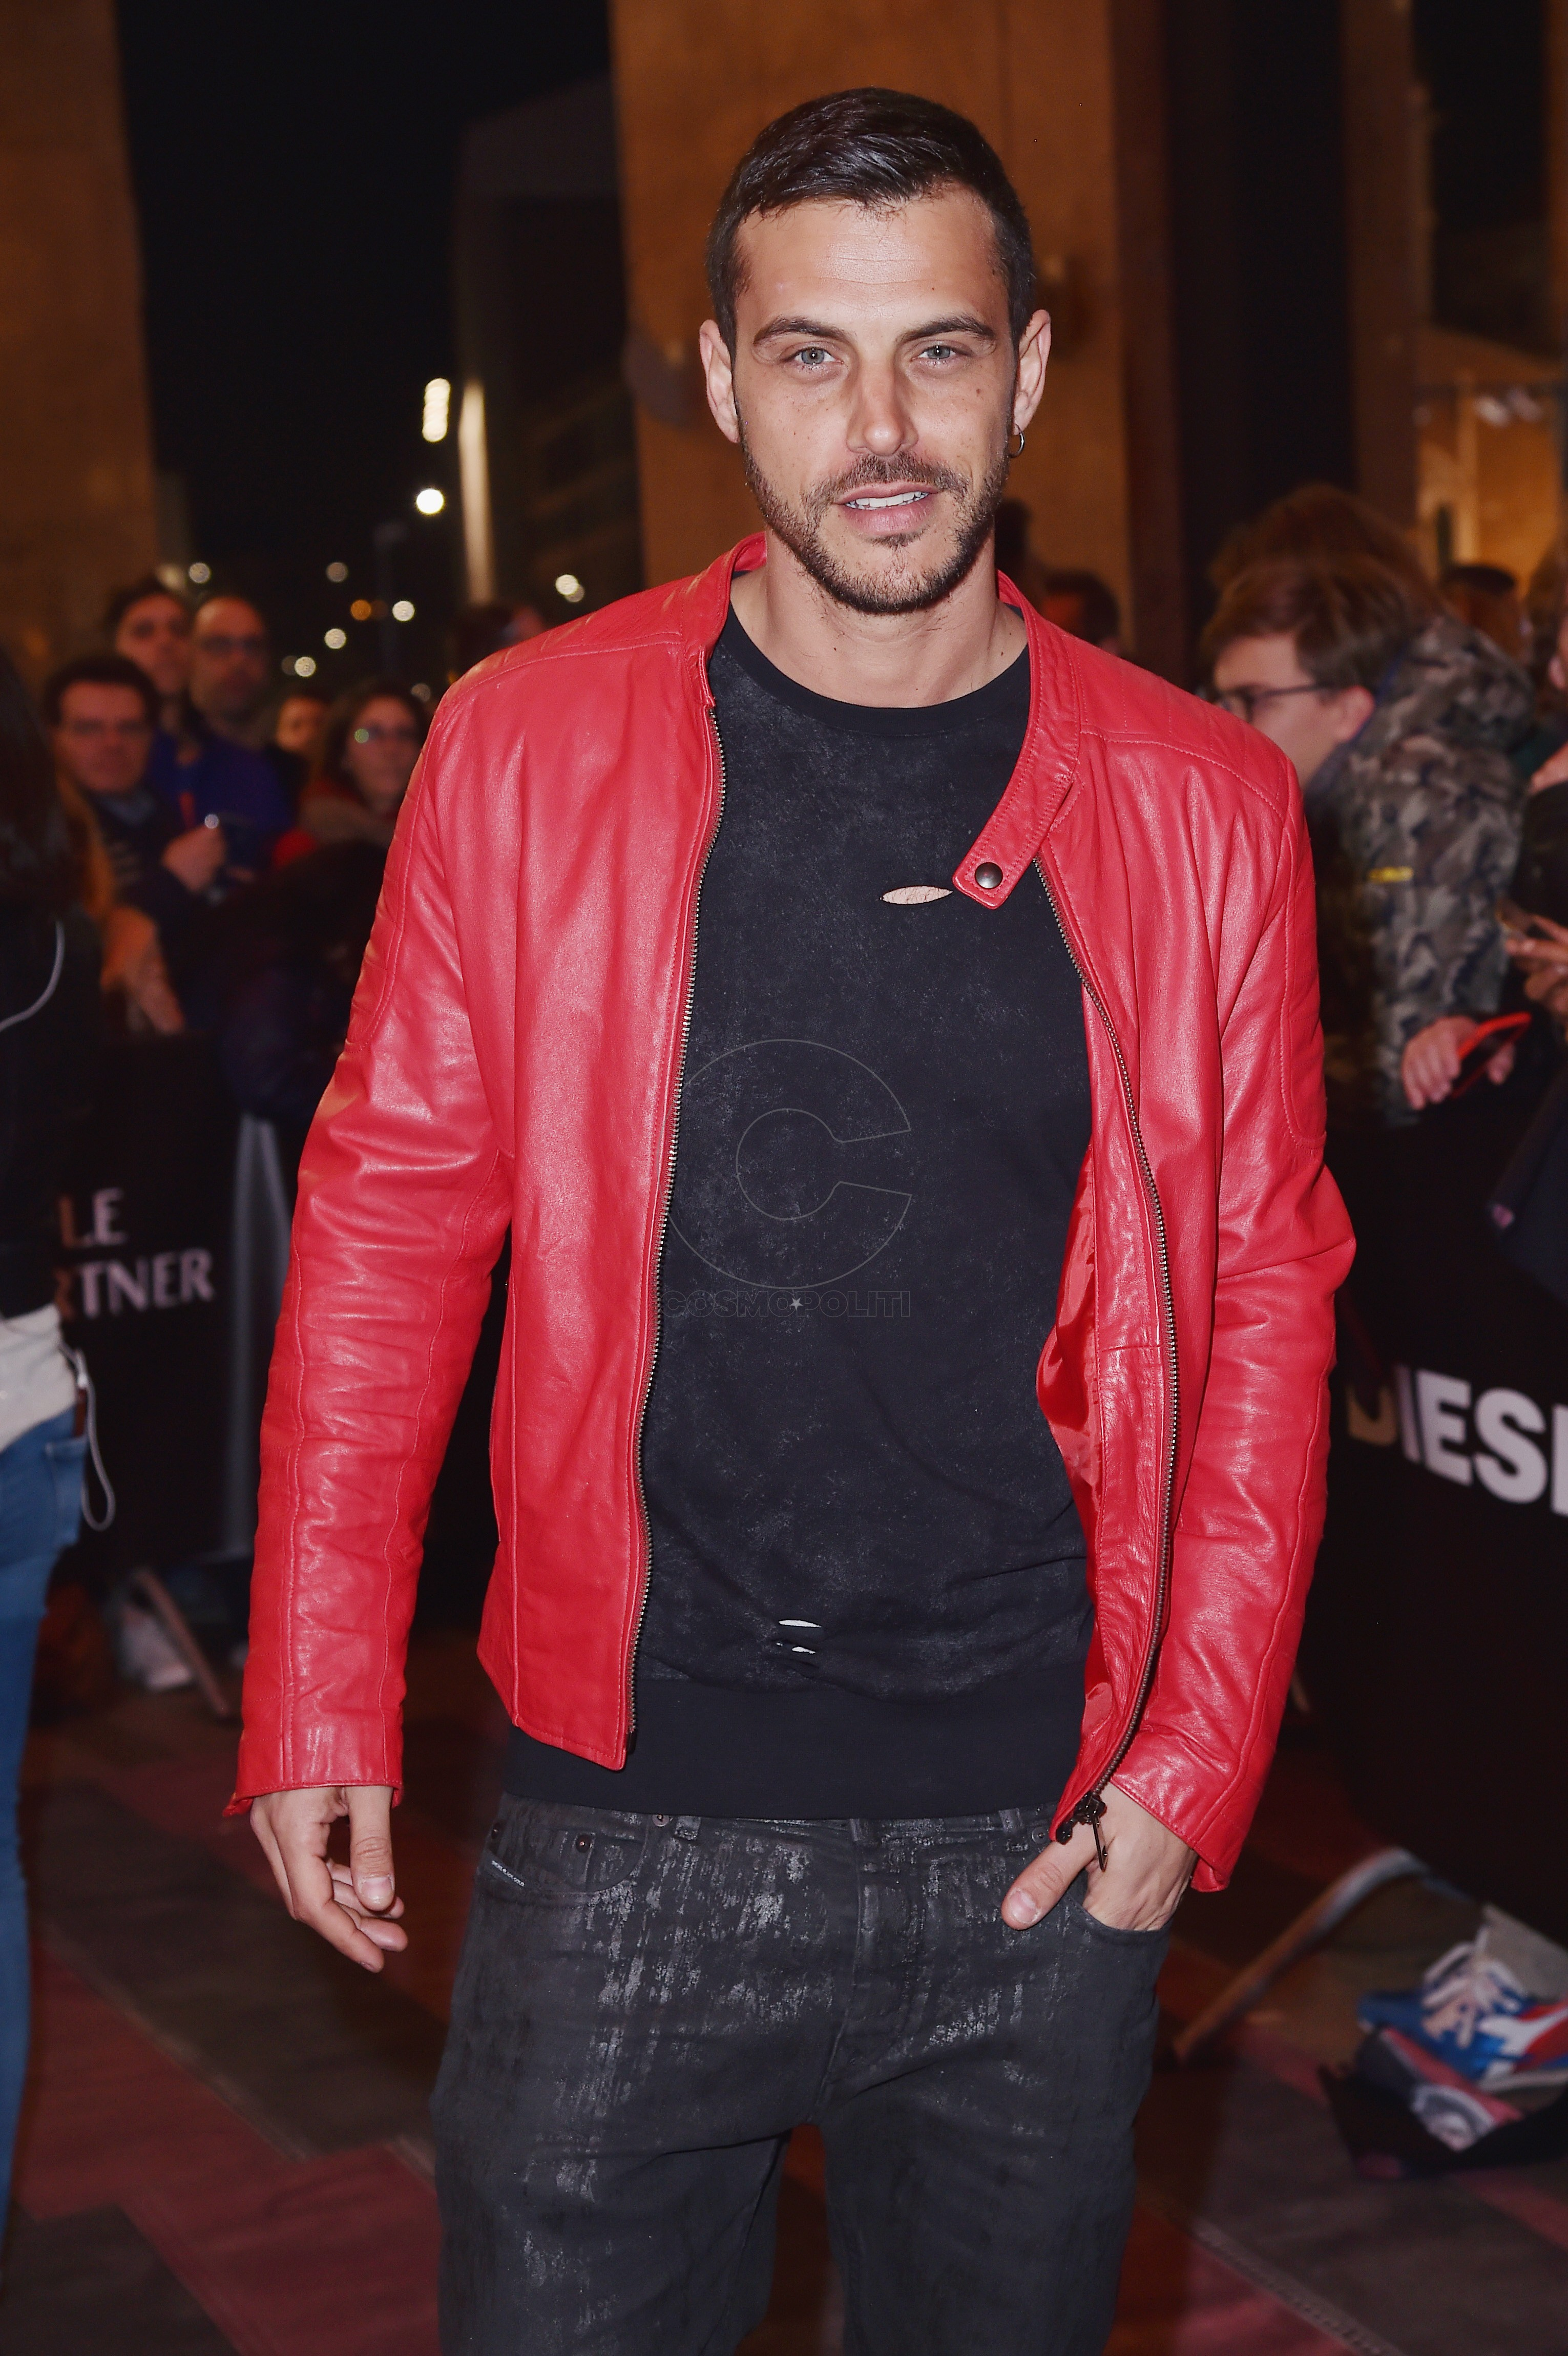 MILAN, ITALY - MARCH 14: Andrea Montovoli attends The New Bomber Presentation at the Diesel Store on March 14, 2017 in Milan, Italy. (Photo by Jacopo Raule/Getty Images for Diesel)